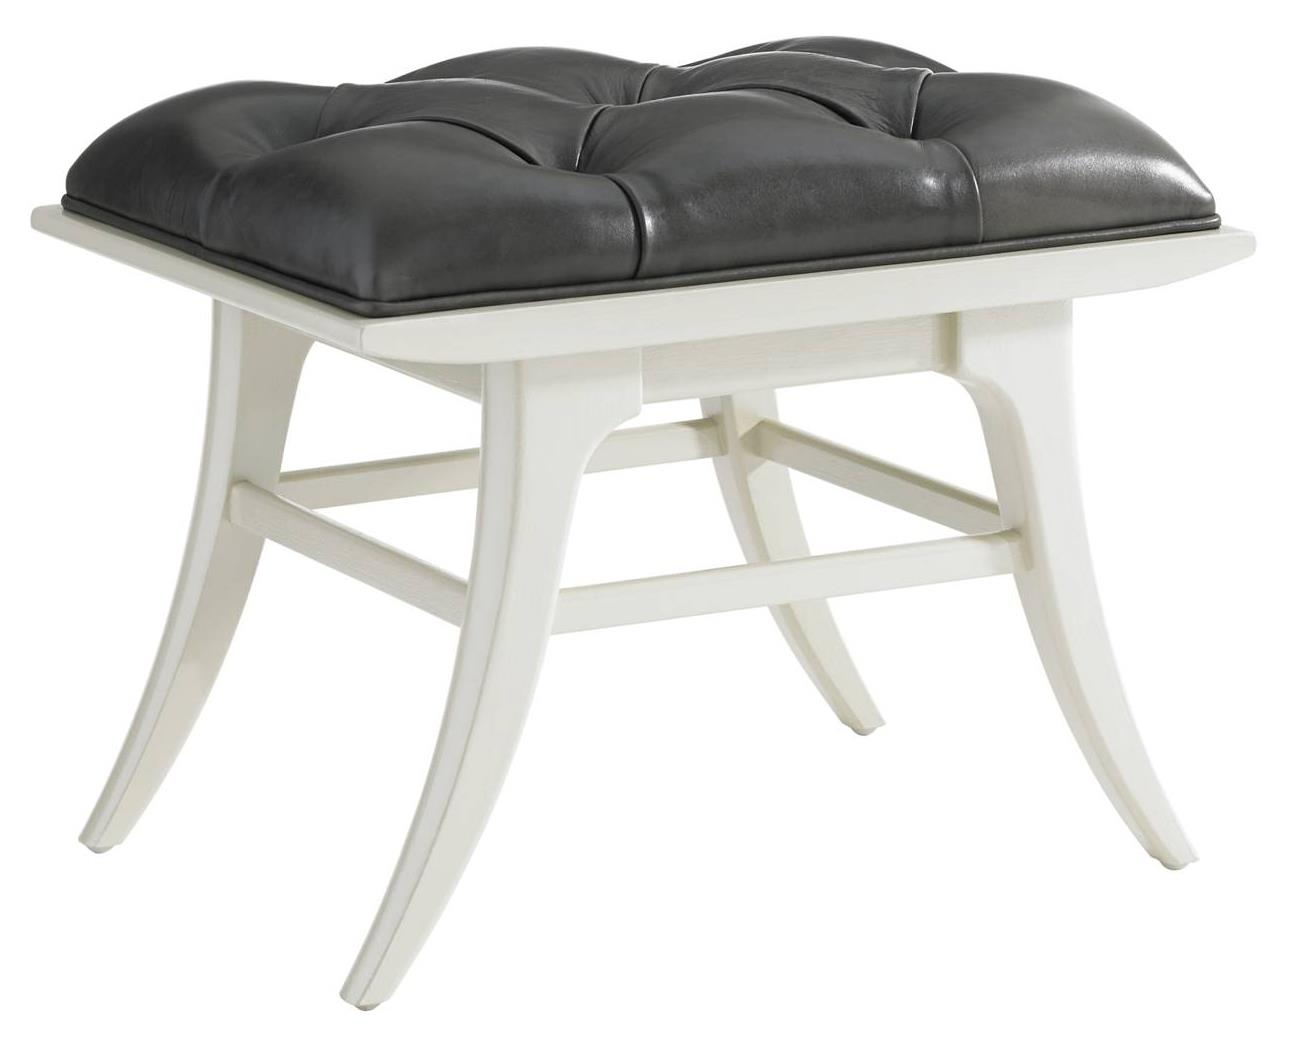 Stanley Furniture Crestaire Lena Ottoman - Item Number: 436-25-72